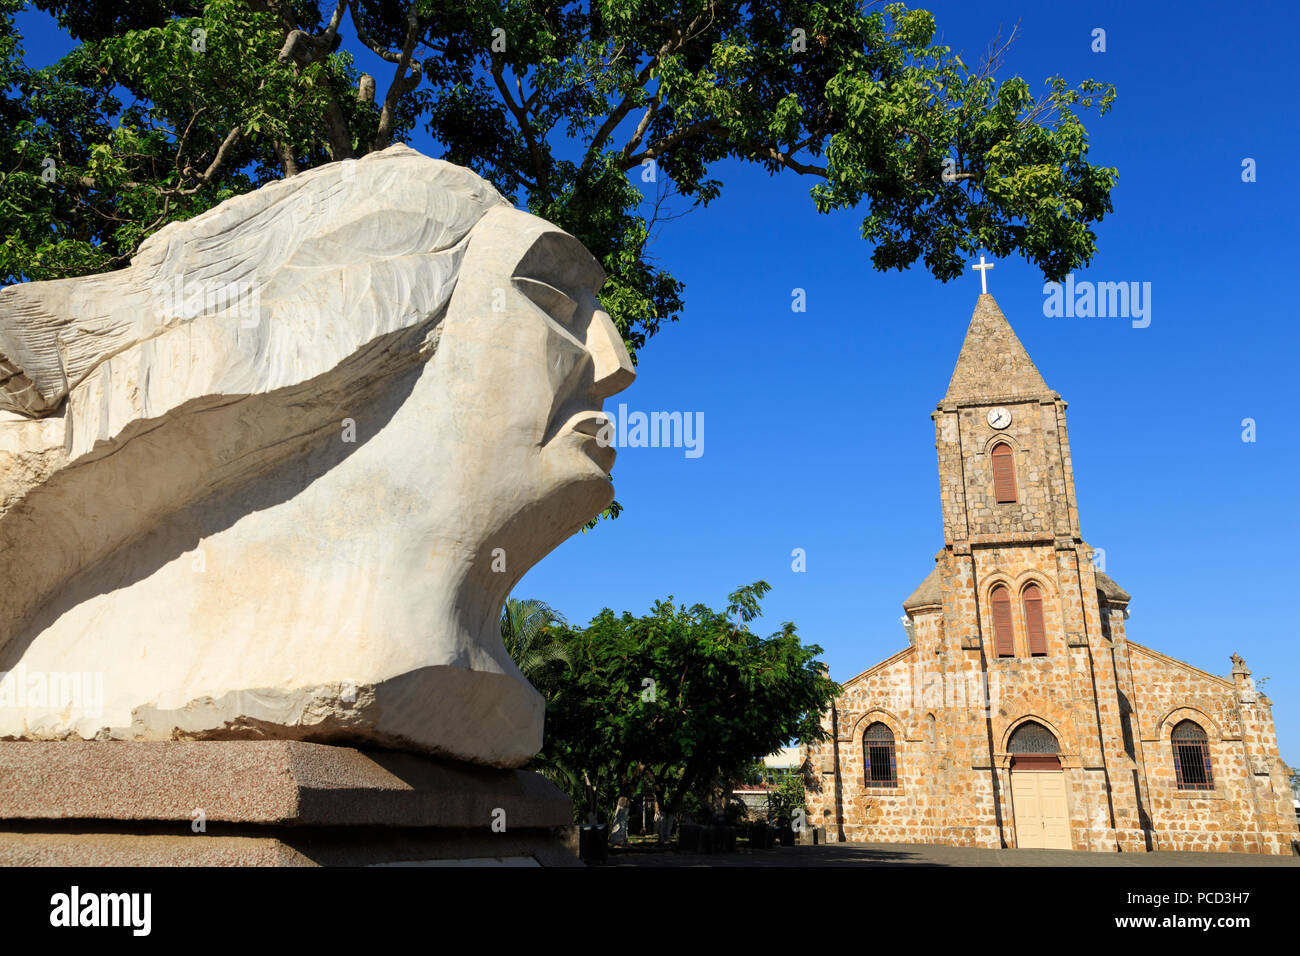 Sculpture par Francisco Martinez et de la cathédrale, de la ville de Puntarenas, Costa Rica, Amérique Centrale Photo Stock